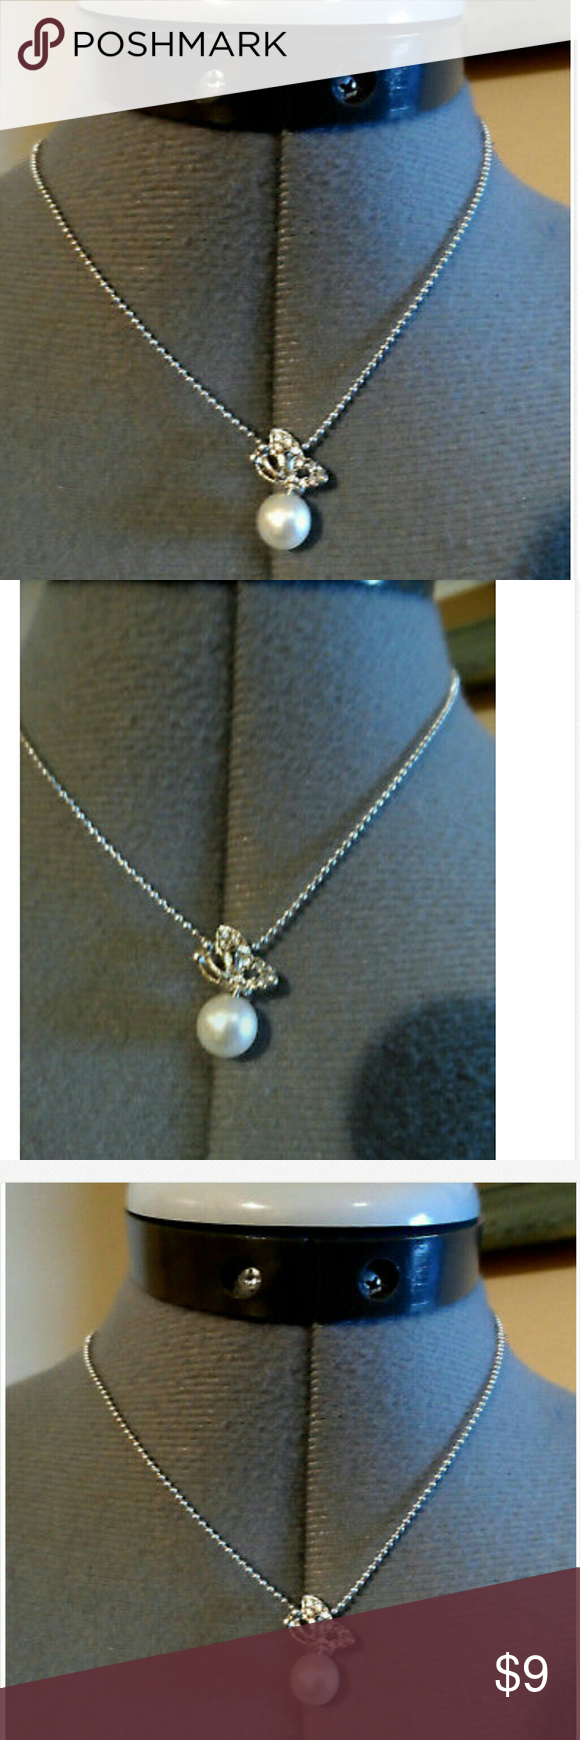 New butterfly pearl pendant u necklace set